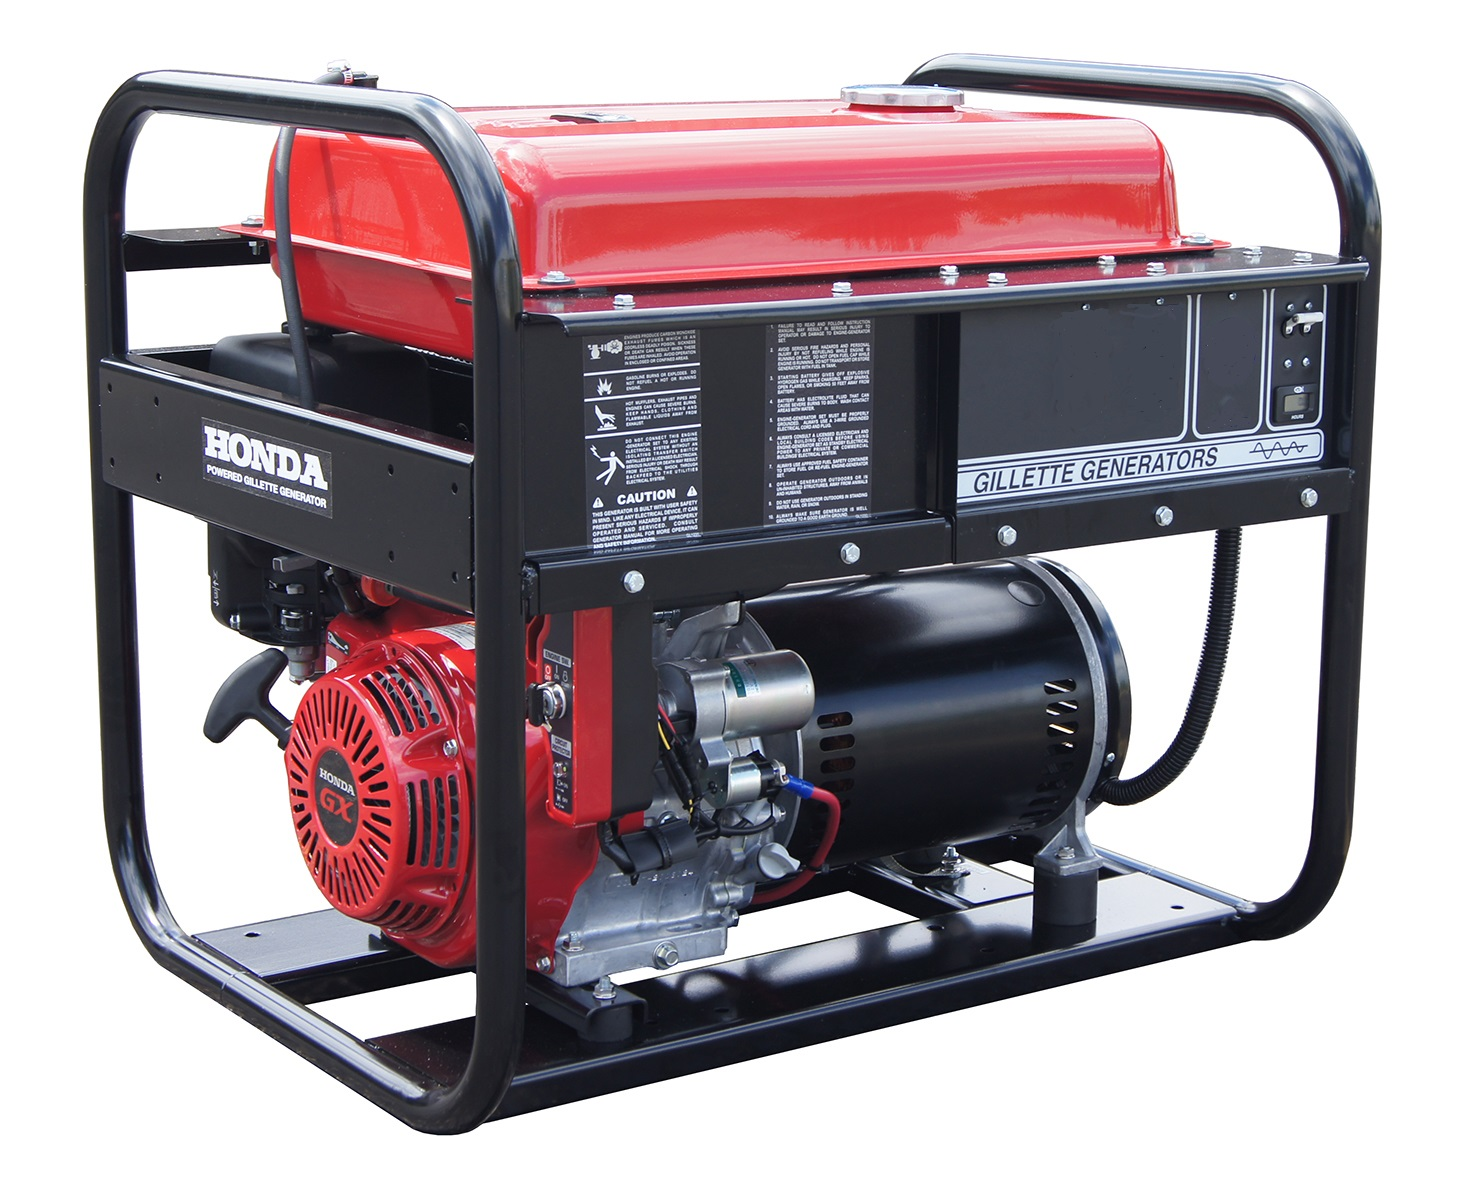 Gillette Portable 3 Phase Generator Gpe 55eh Absolute Generators Also 220 Volt Welder To Adapter On Cord Wiring